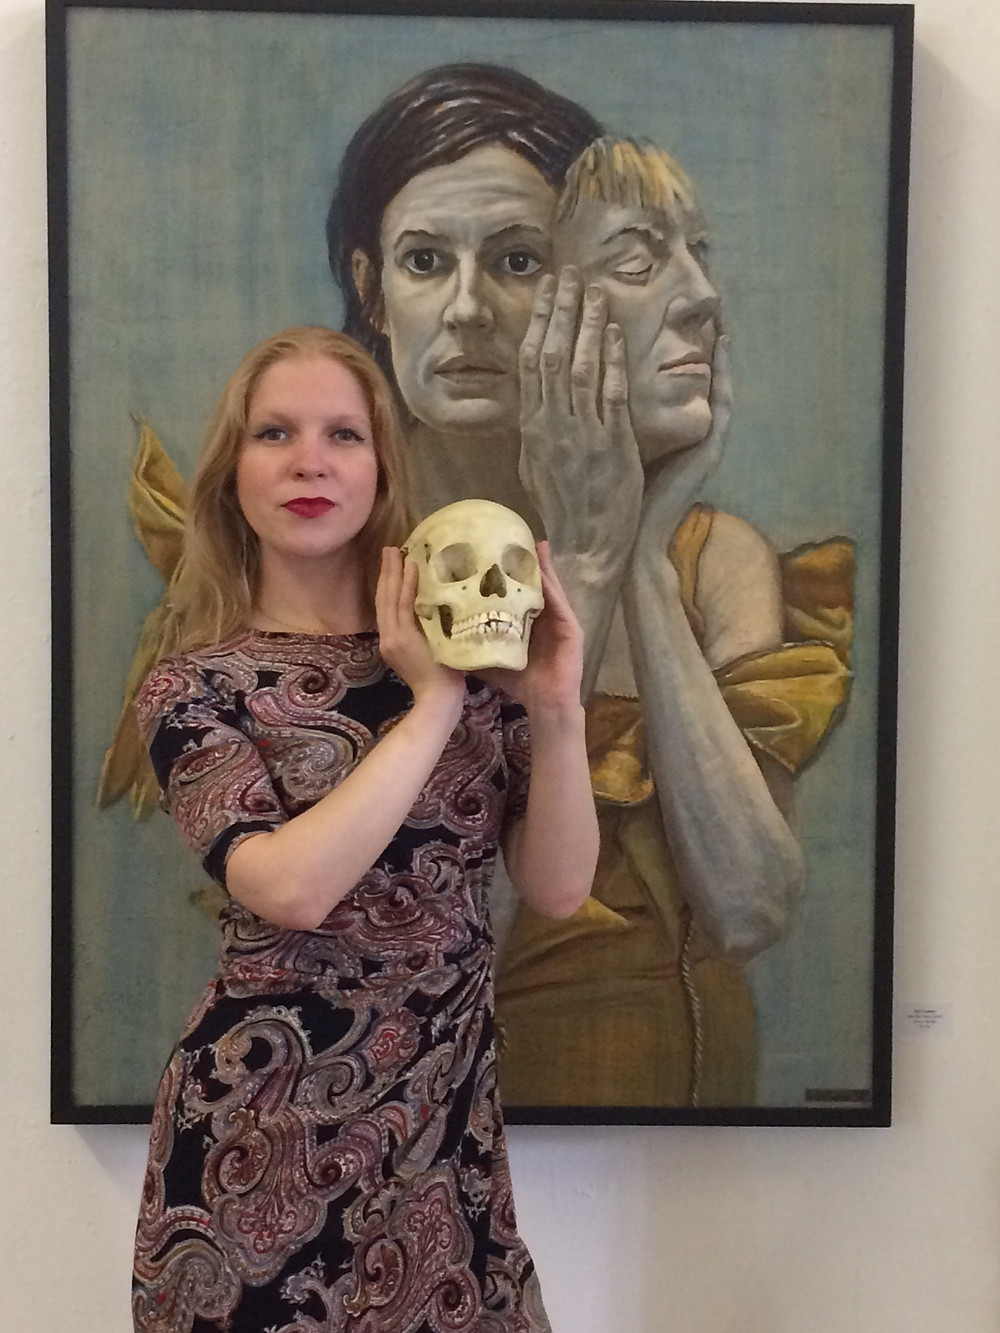 Memento mori with artist and skull